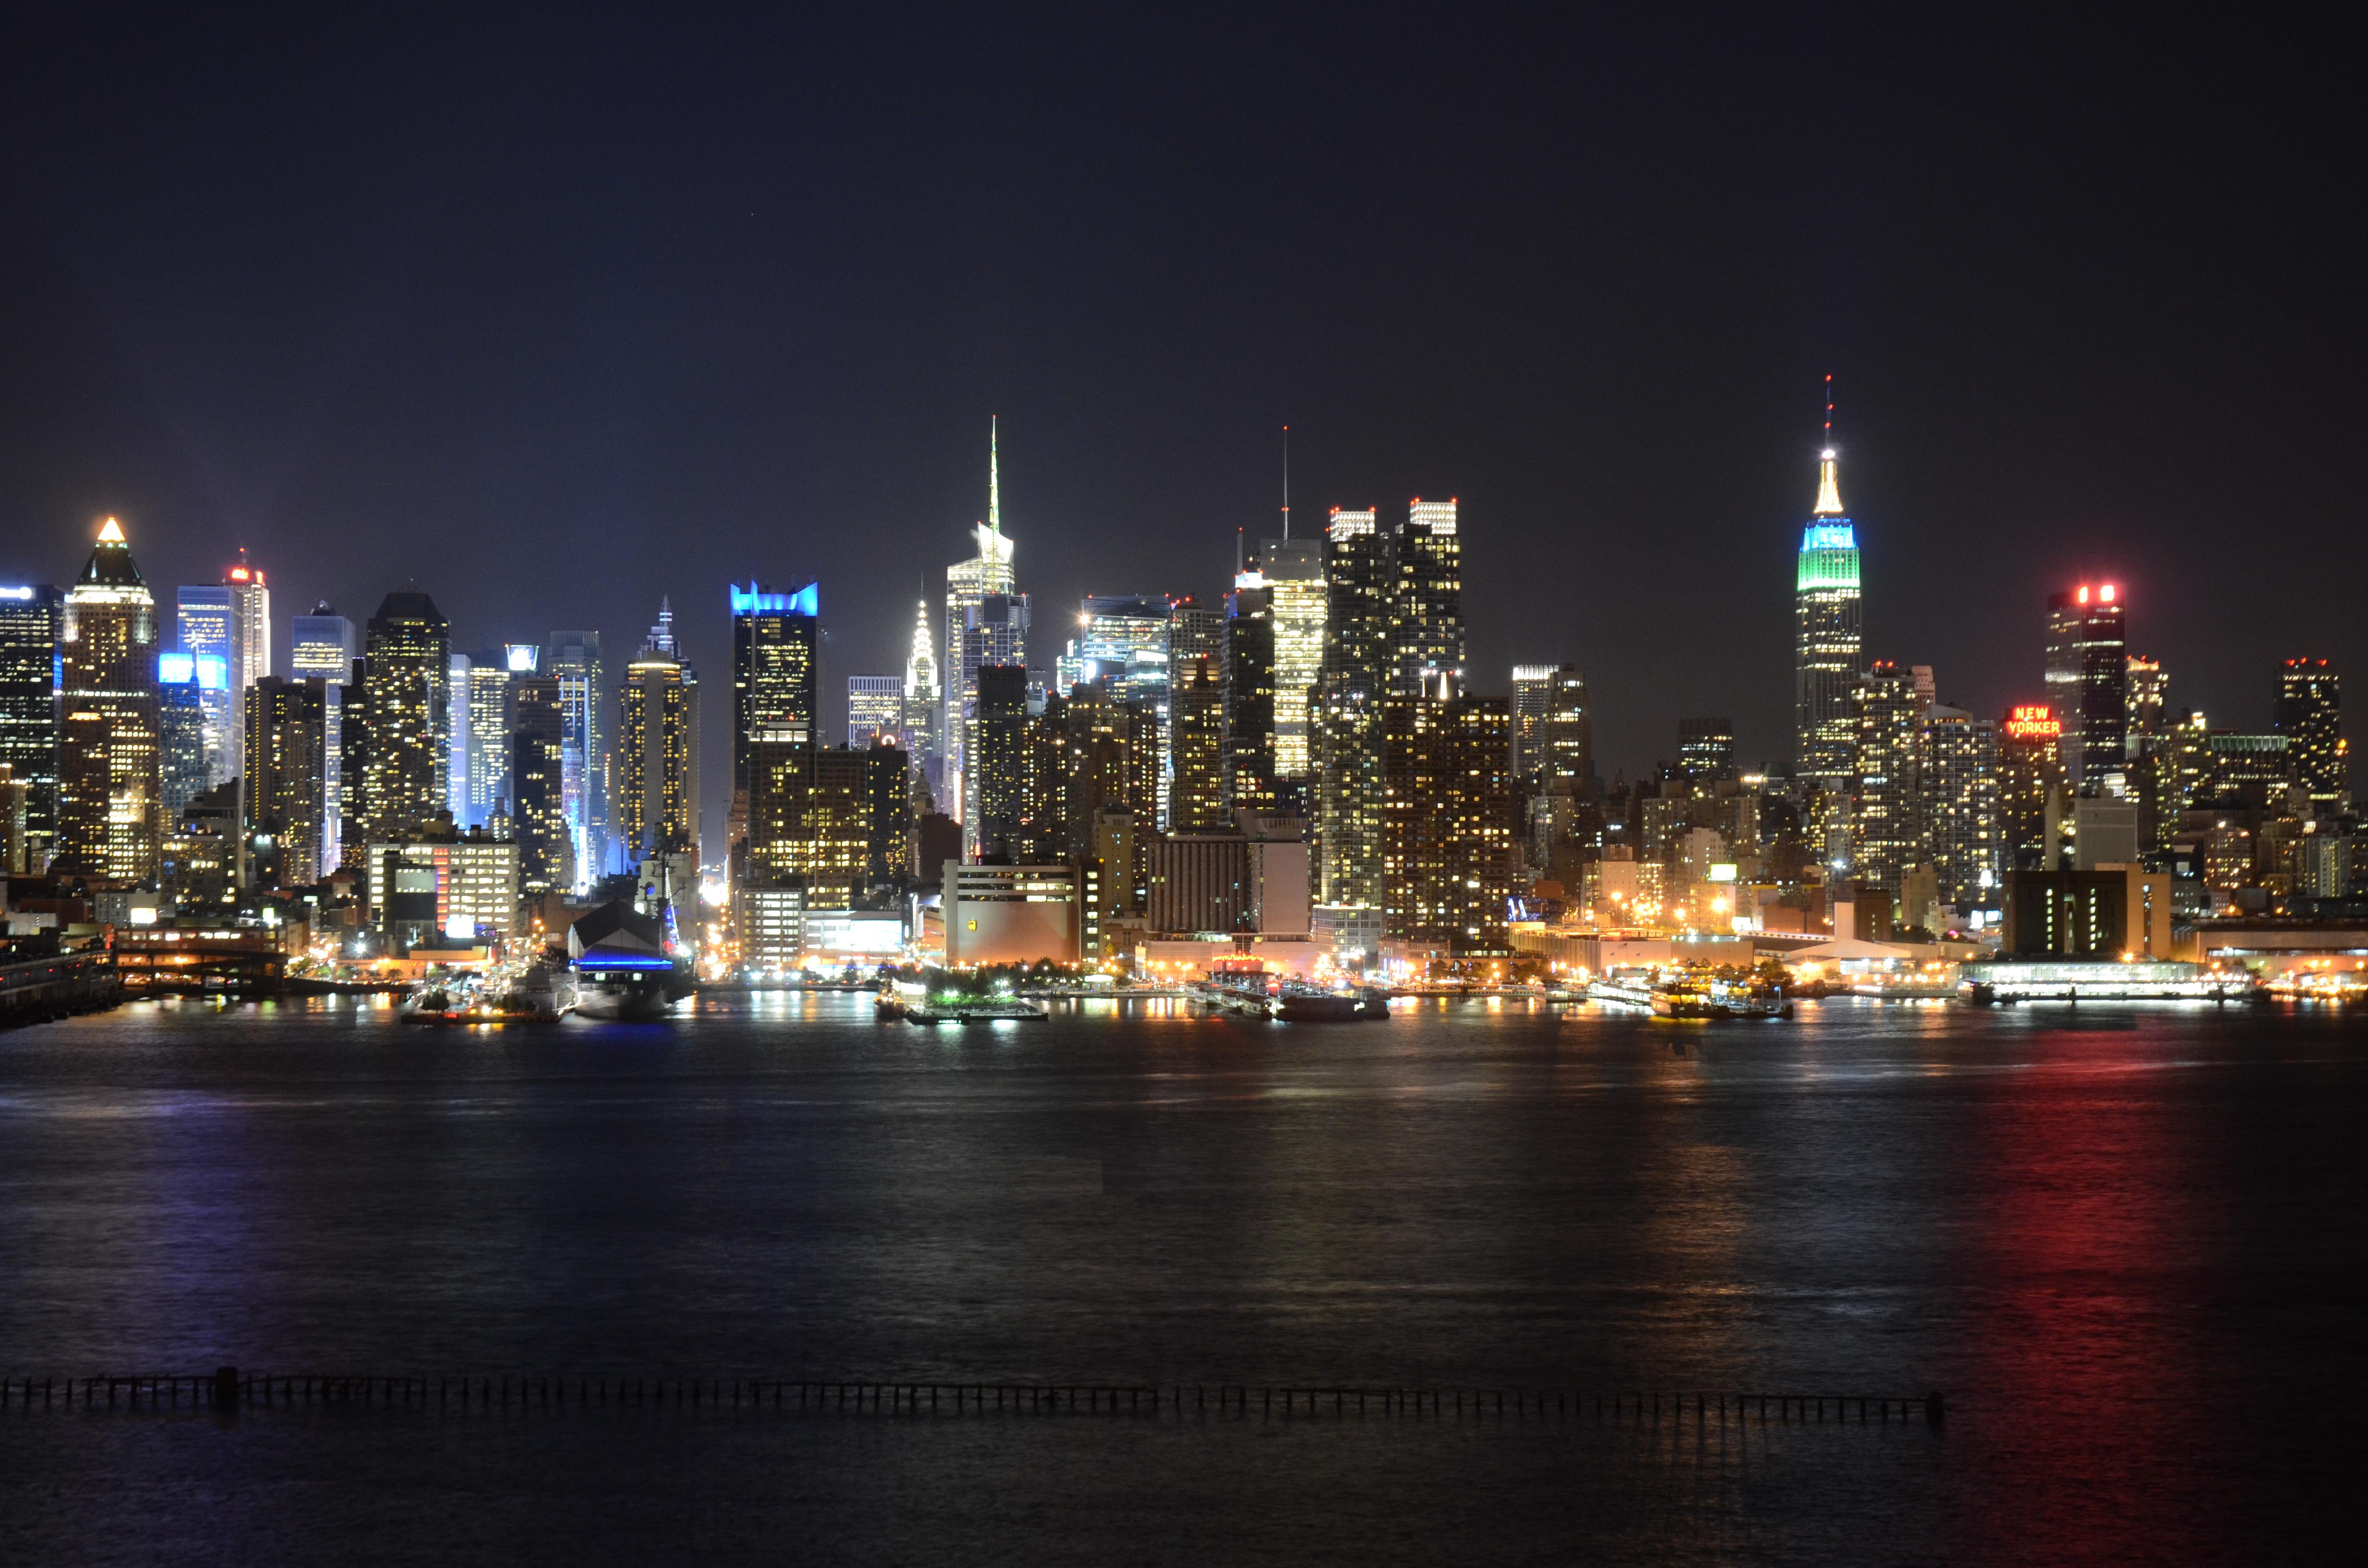 Night Time Cityscape Photo Of New York